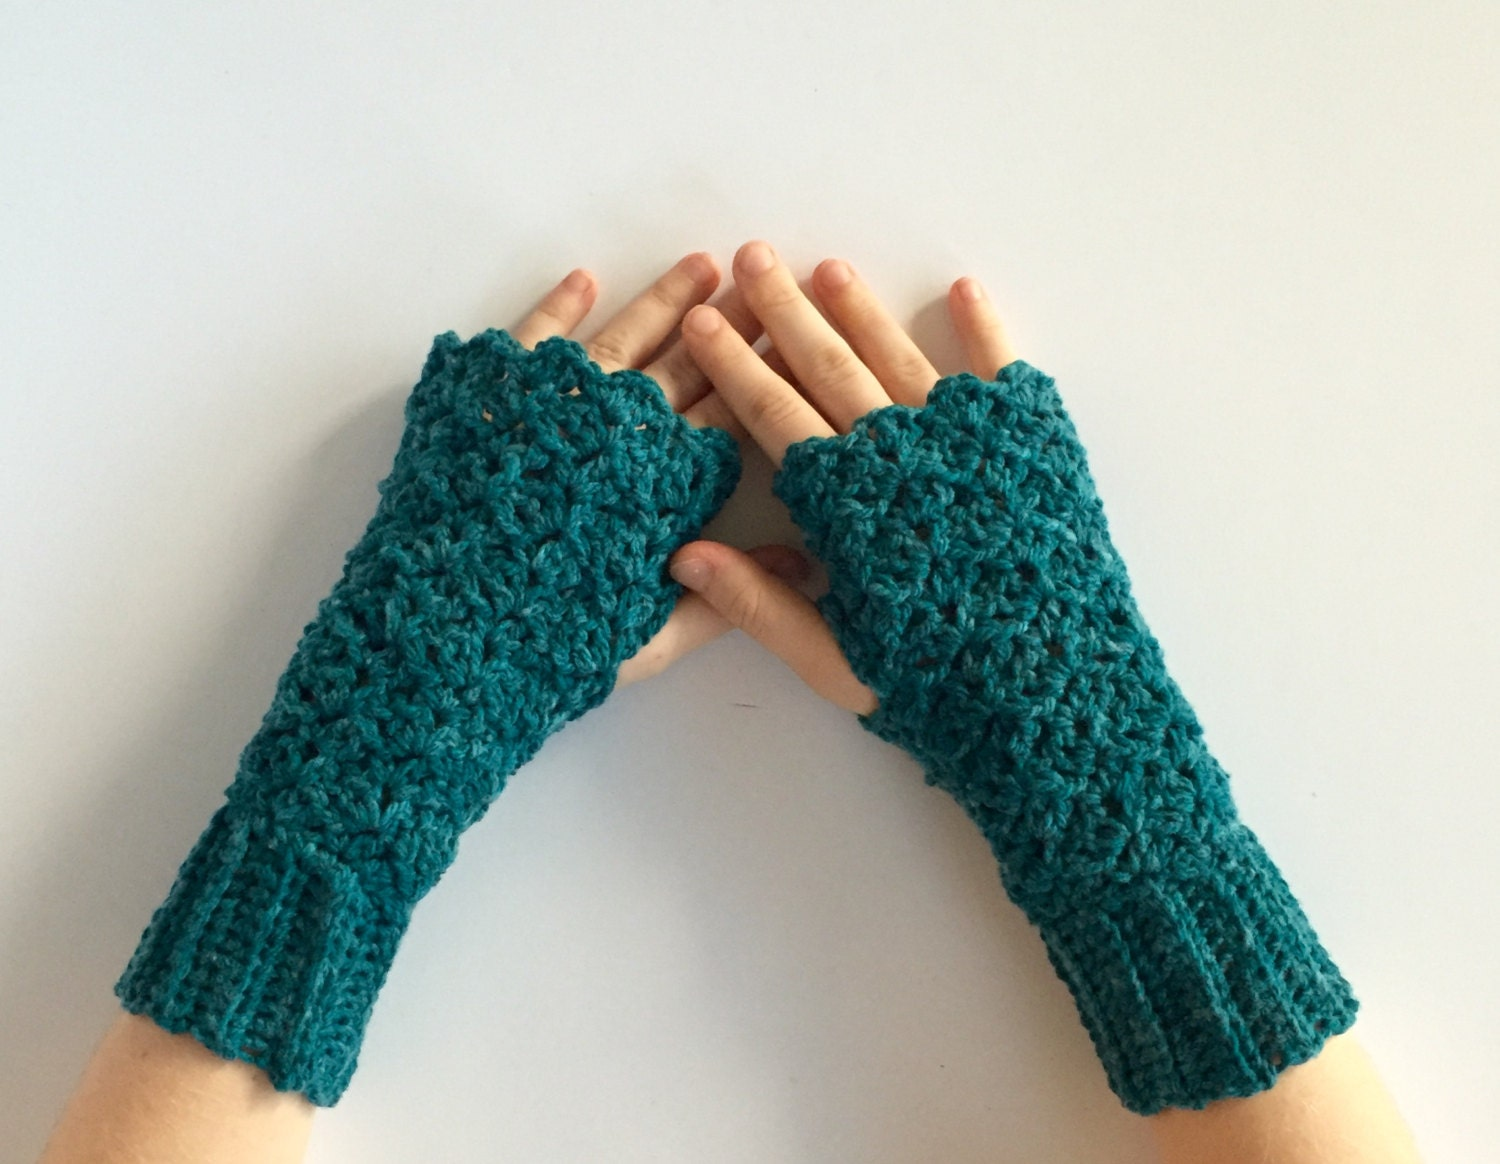 Lace Fingerless Gloves Crochet Pattern - This is a digital file